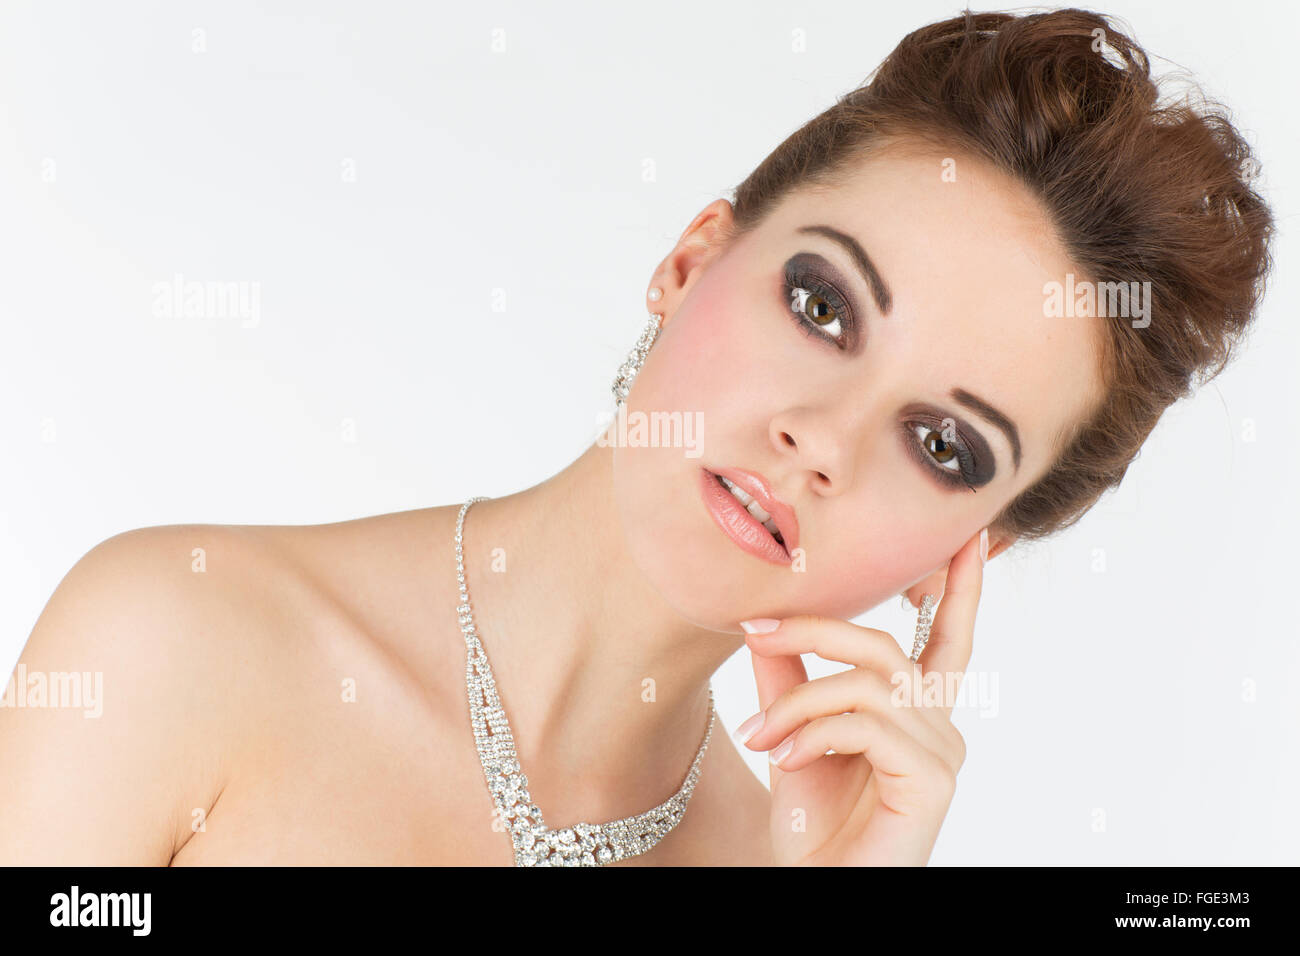 Young woman with jewelry, Portrait - Stock Image